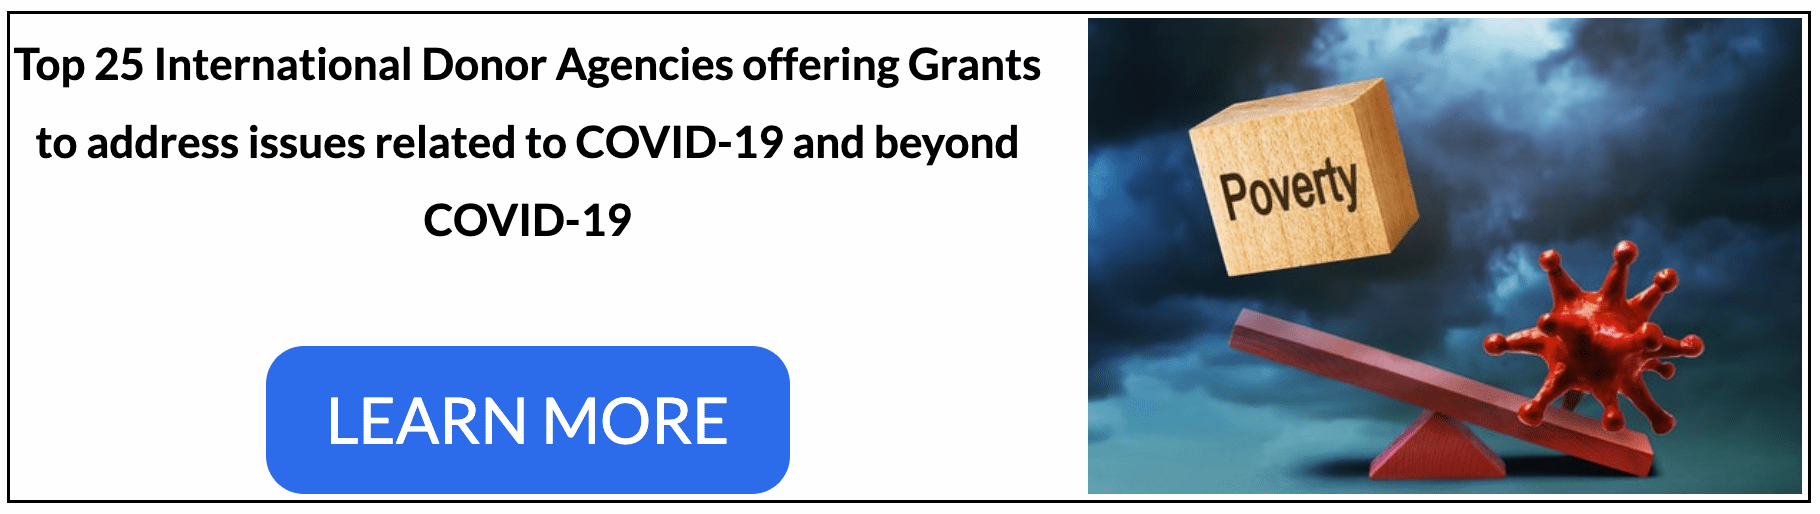 Top 25 International Donor Agencies offering Grants to address issues related to COVID-19 and beyond COVID-19